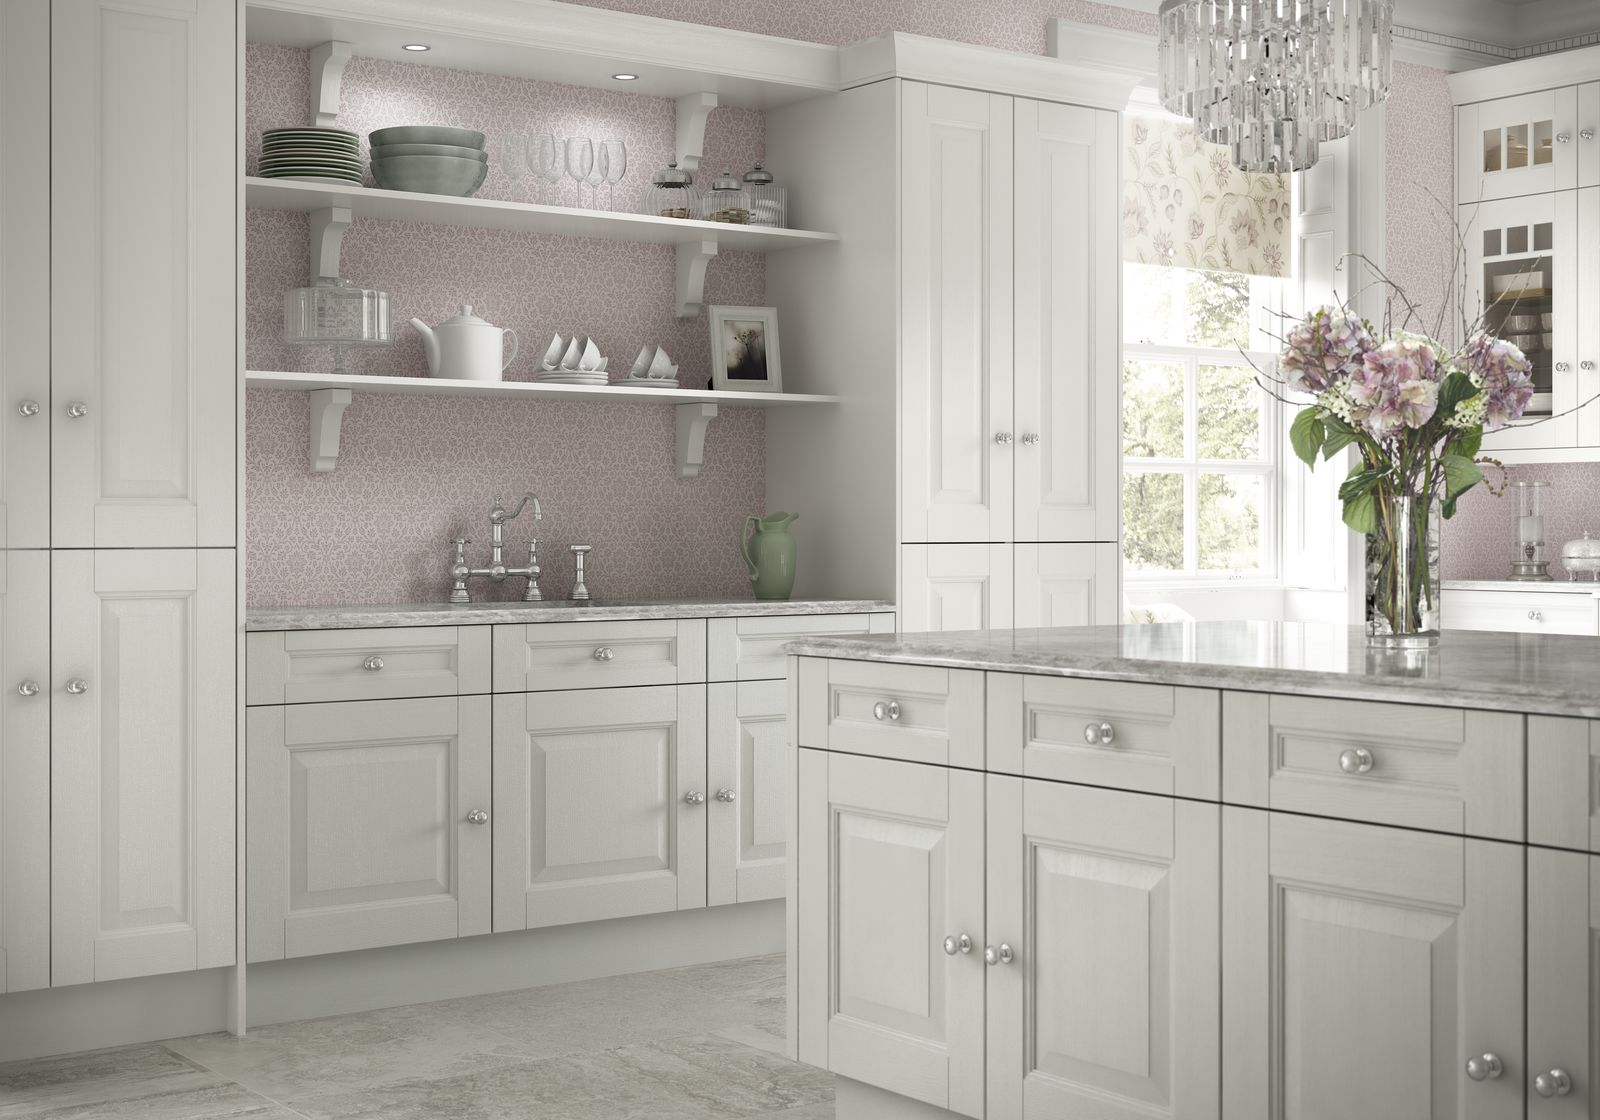 bedale collection laura ashley glotech kitchens. Black Bedroom Furniture Sets. Home Design Ideas